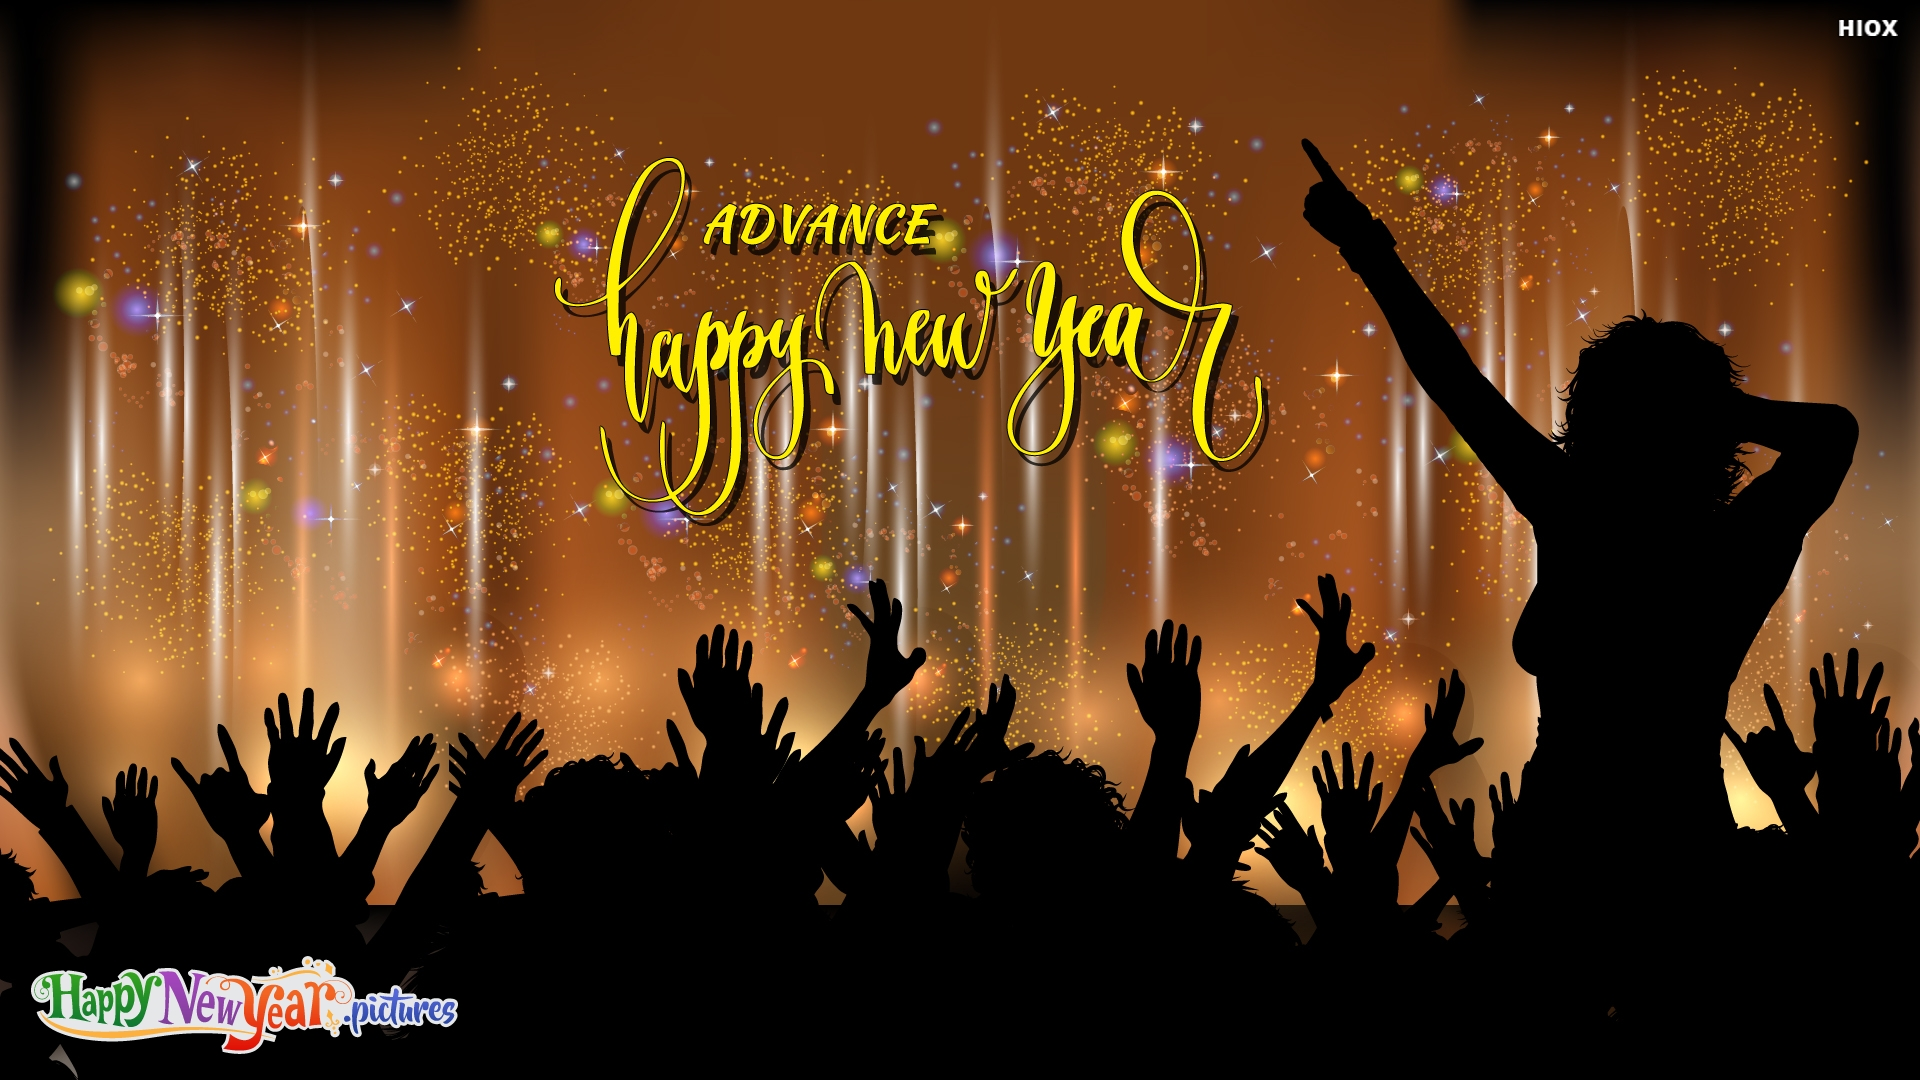 Advance Happy New Year 2020 Wishes To Everyone